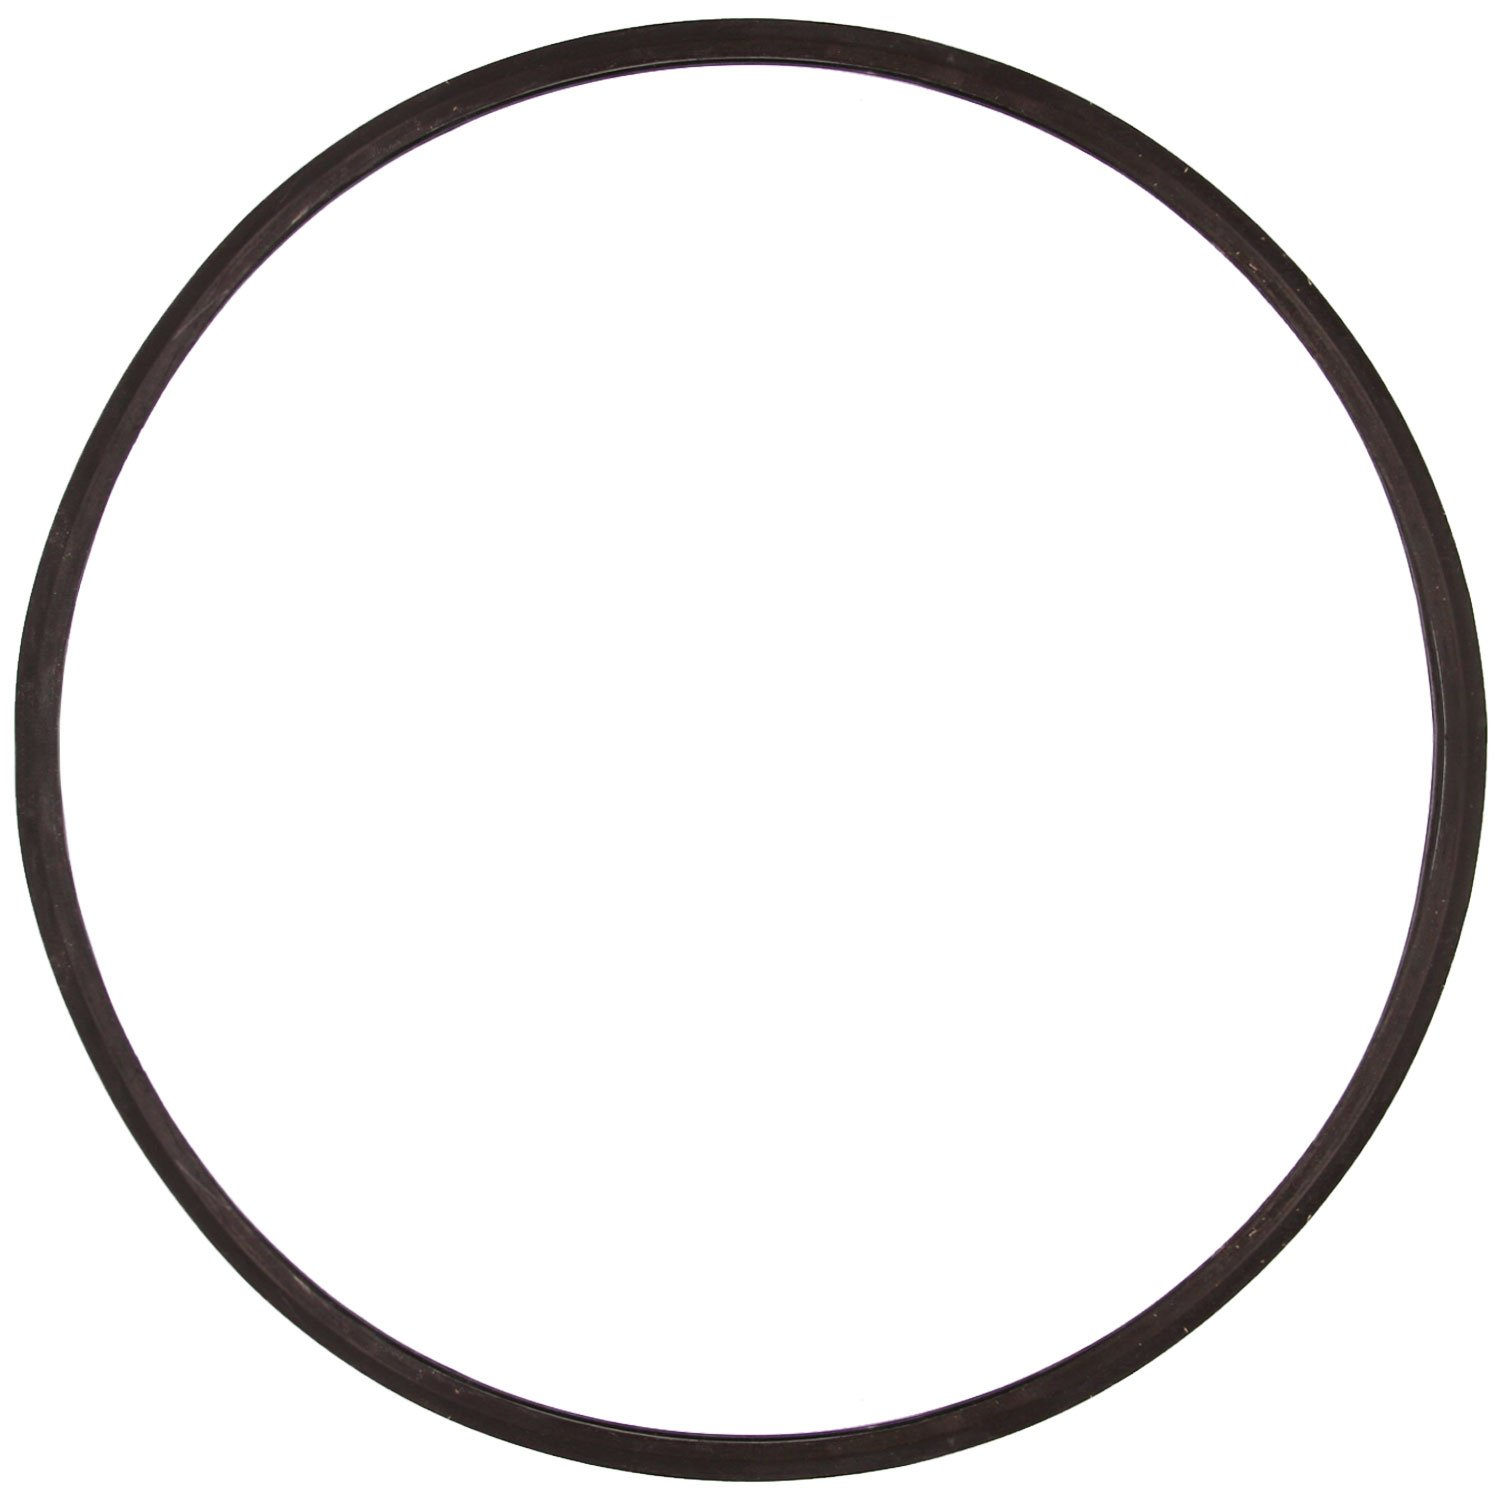 TCP Global Paint Pressure Pot Tank Lid Replacement Rubber Gasket for 5 Gallon (20 Liter) Paint Pressure Tanks